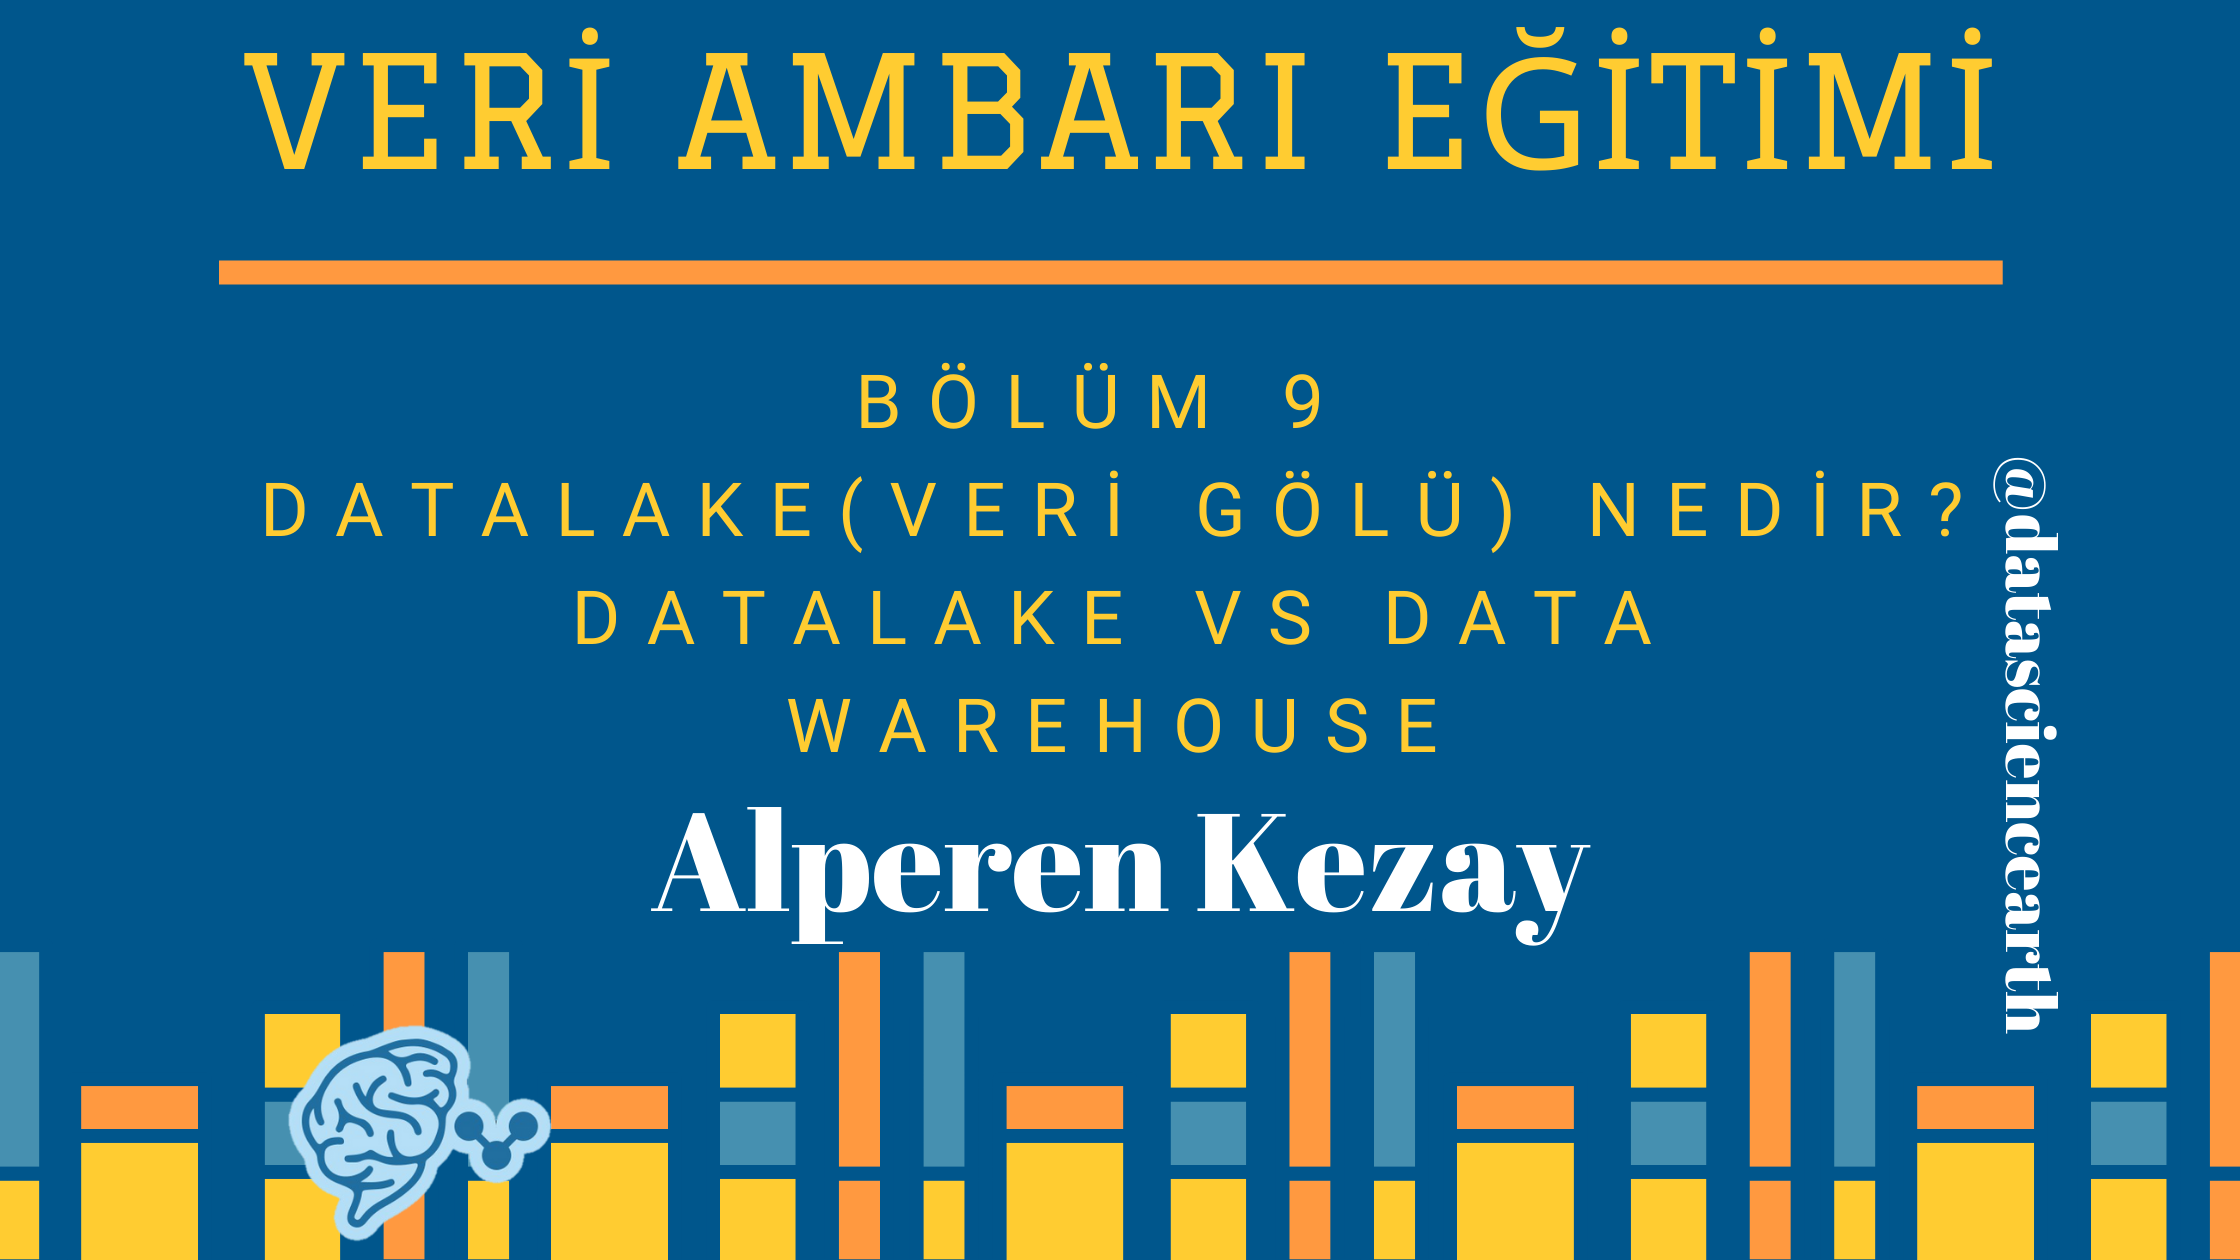 Data Lake ( Veri Gölü ) Nedir? Data Lake VS Data Warehouse